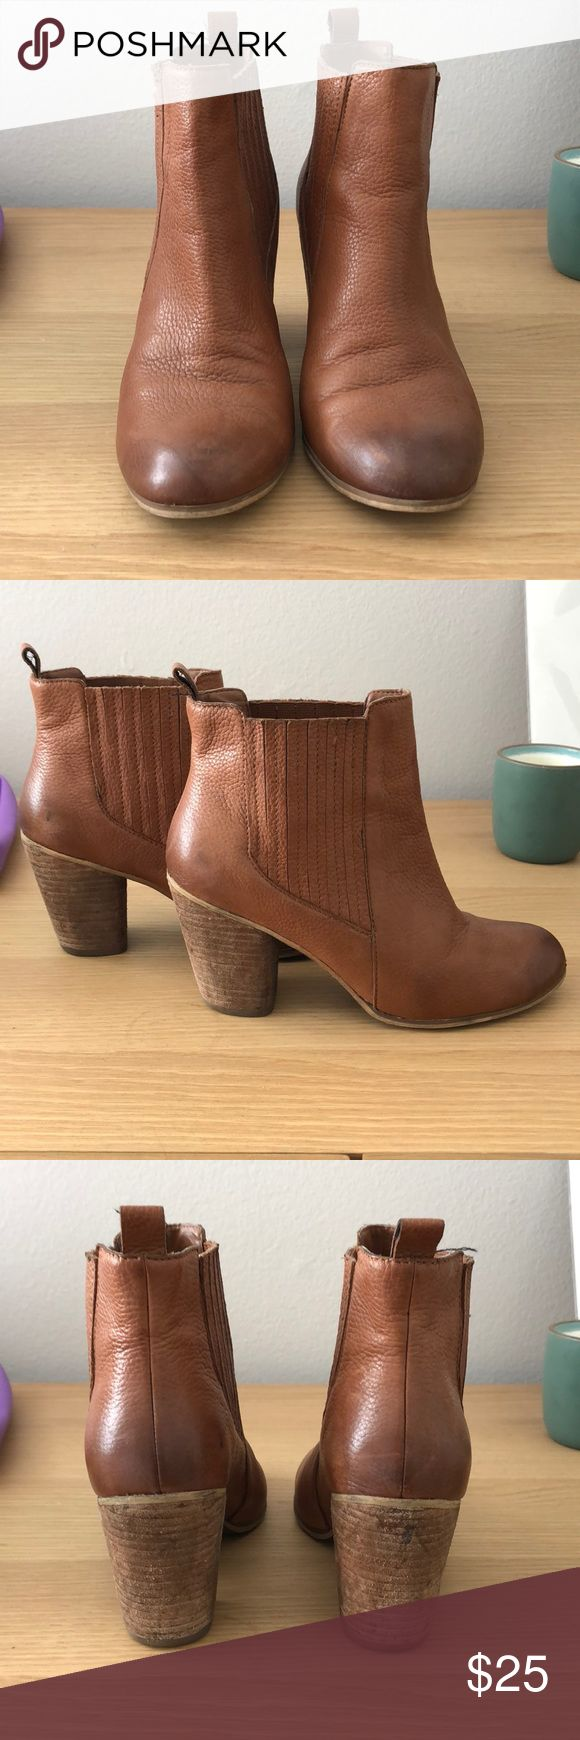 BP heeled Chelsea bootie The best BP Chelsea boot.  Preused with some wear and tear. But in good condition and so comfy! Size 6.5. Nordstrom Shoes Ankle Boots & Booties